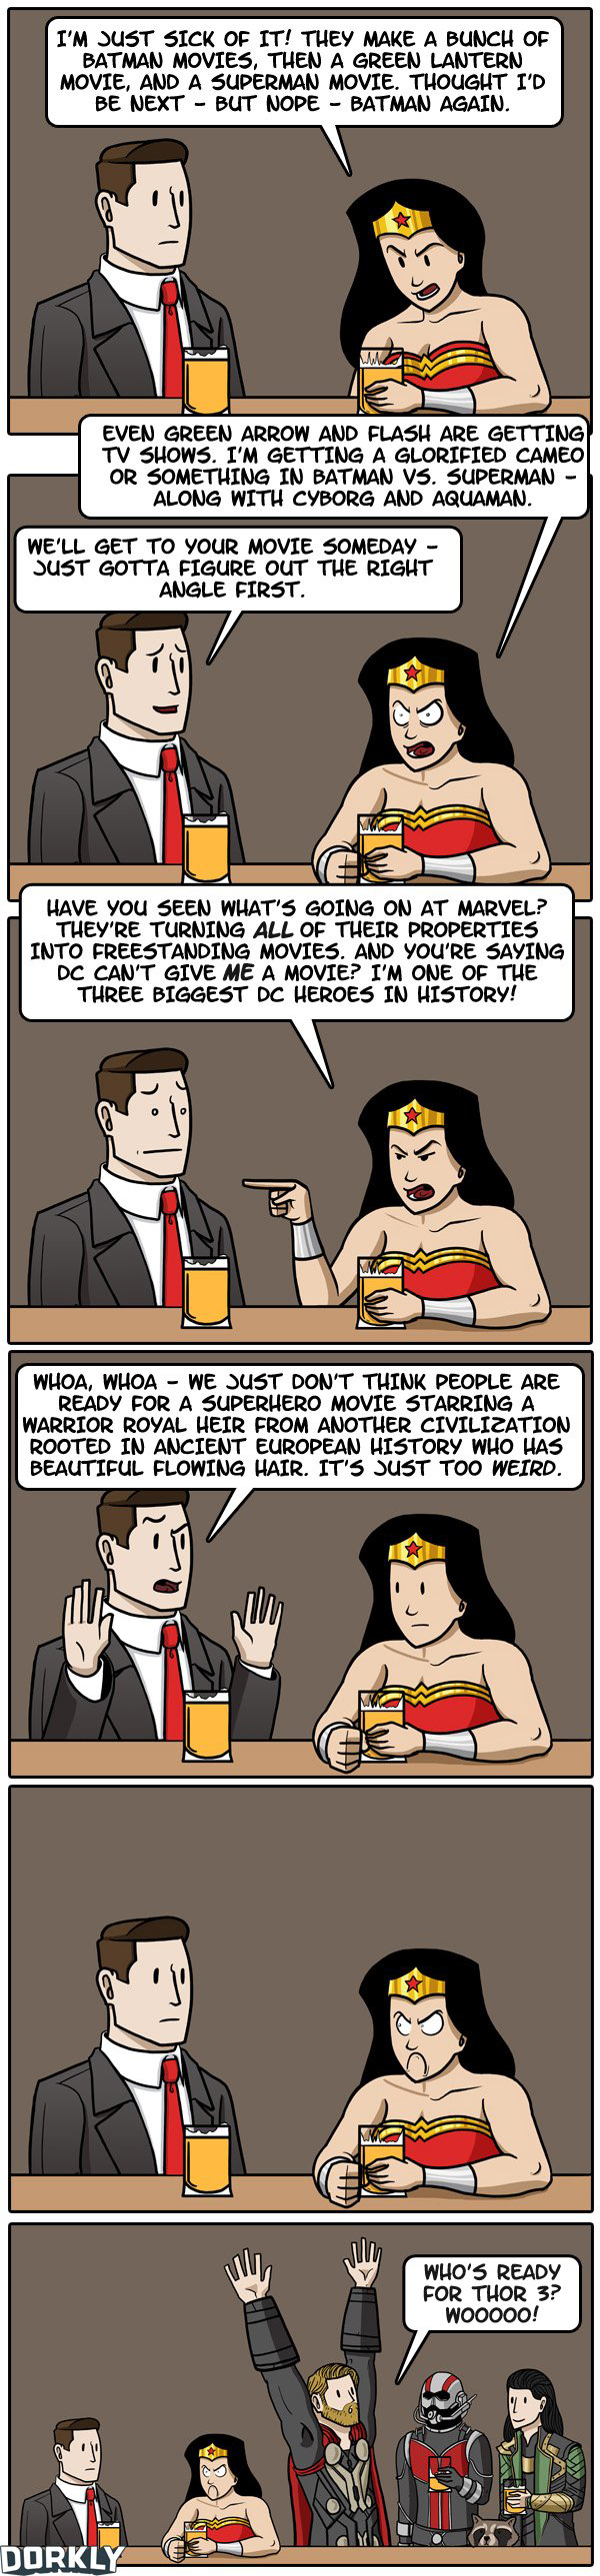 The Trouble with Wonder Woman by JULIA LEPETIT AND ANDREW BRIDGMAN (Dorkly)